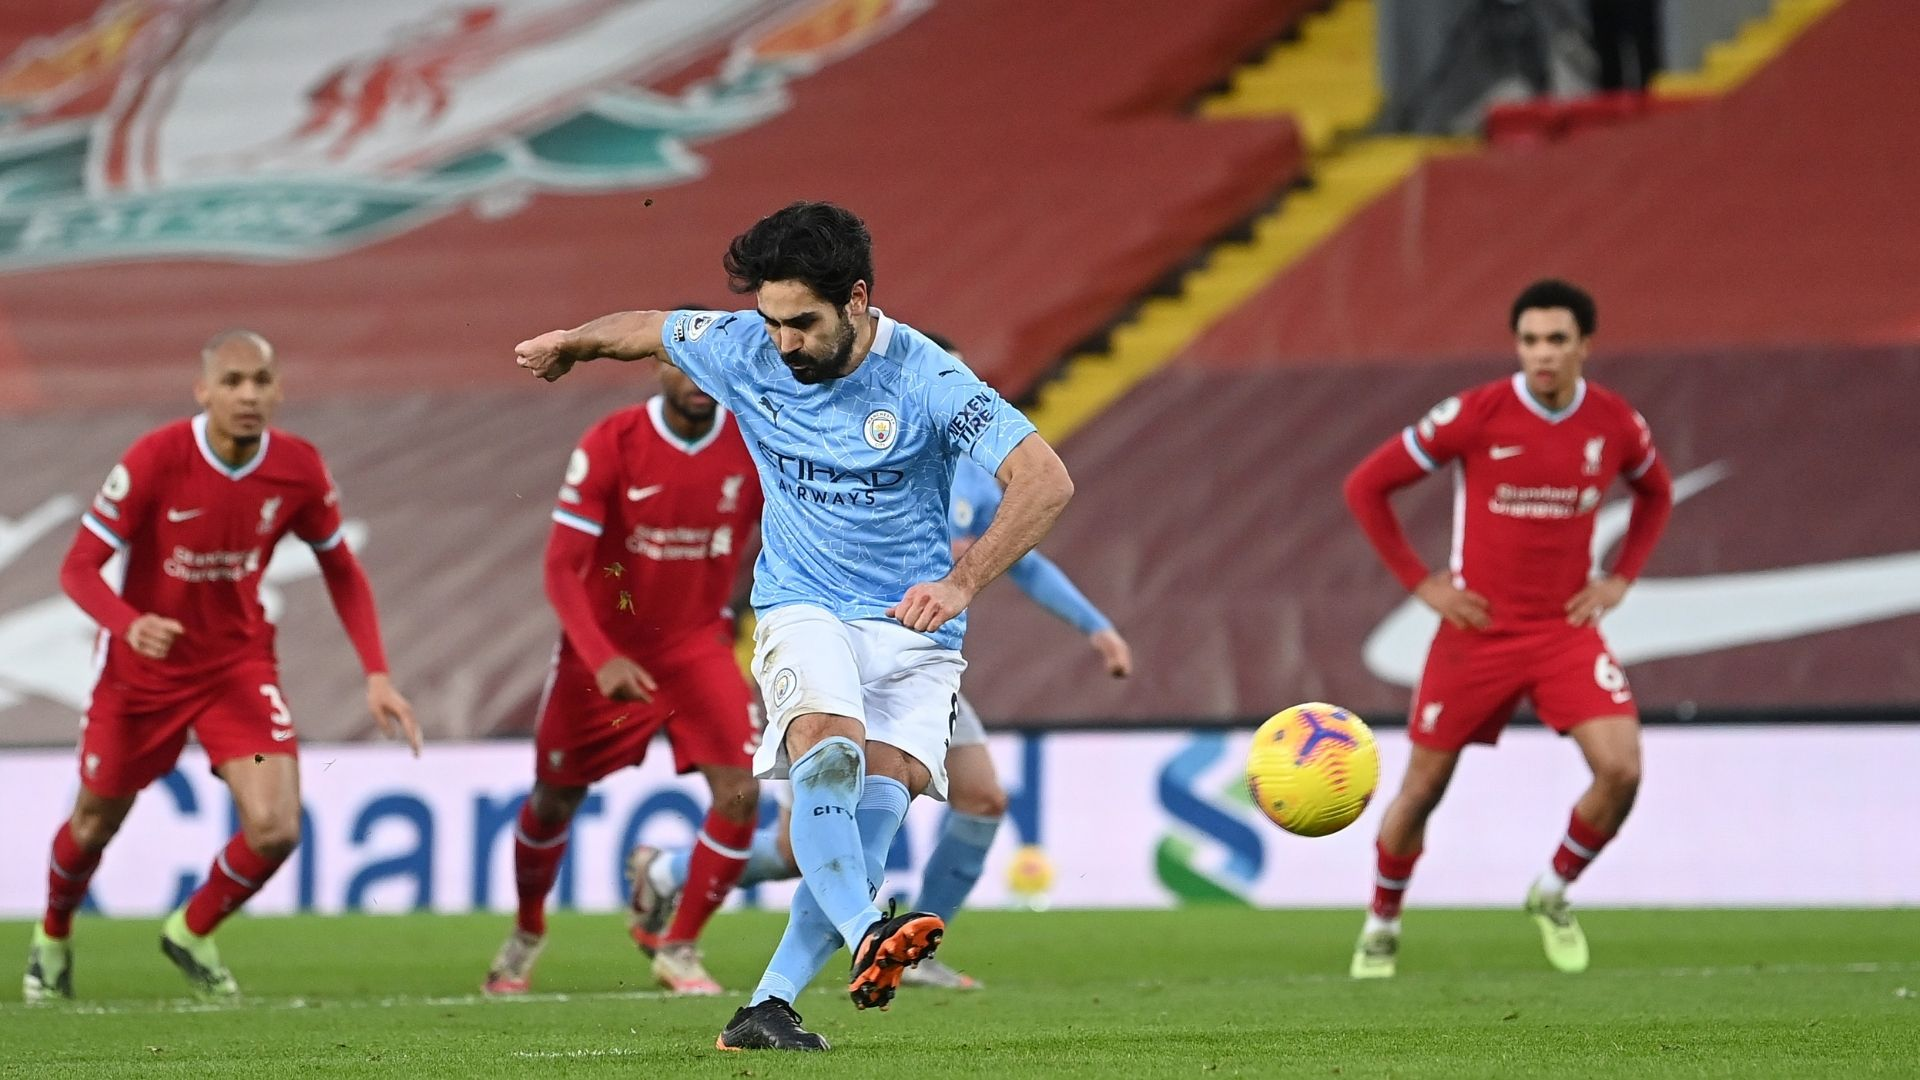 The Summary Of Liverpool Vs Manchester City Of The Premier League 2020 2021 Video Goals And Statistics En24 World